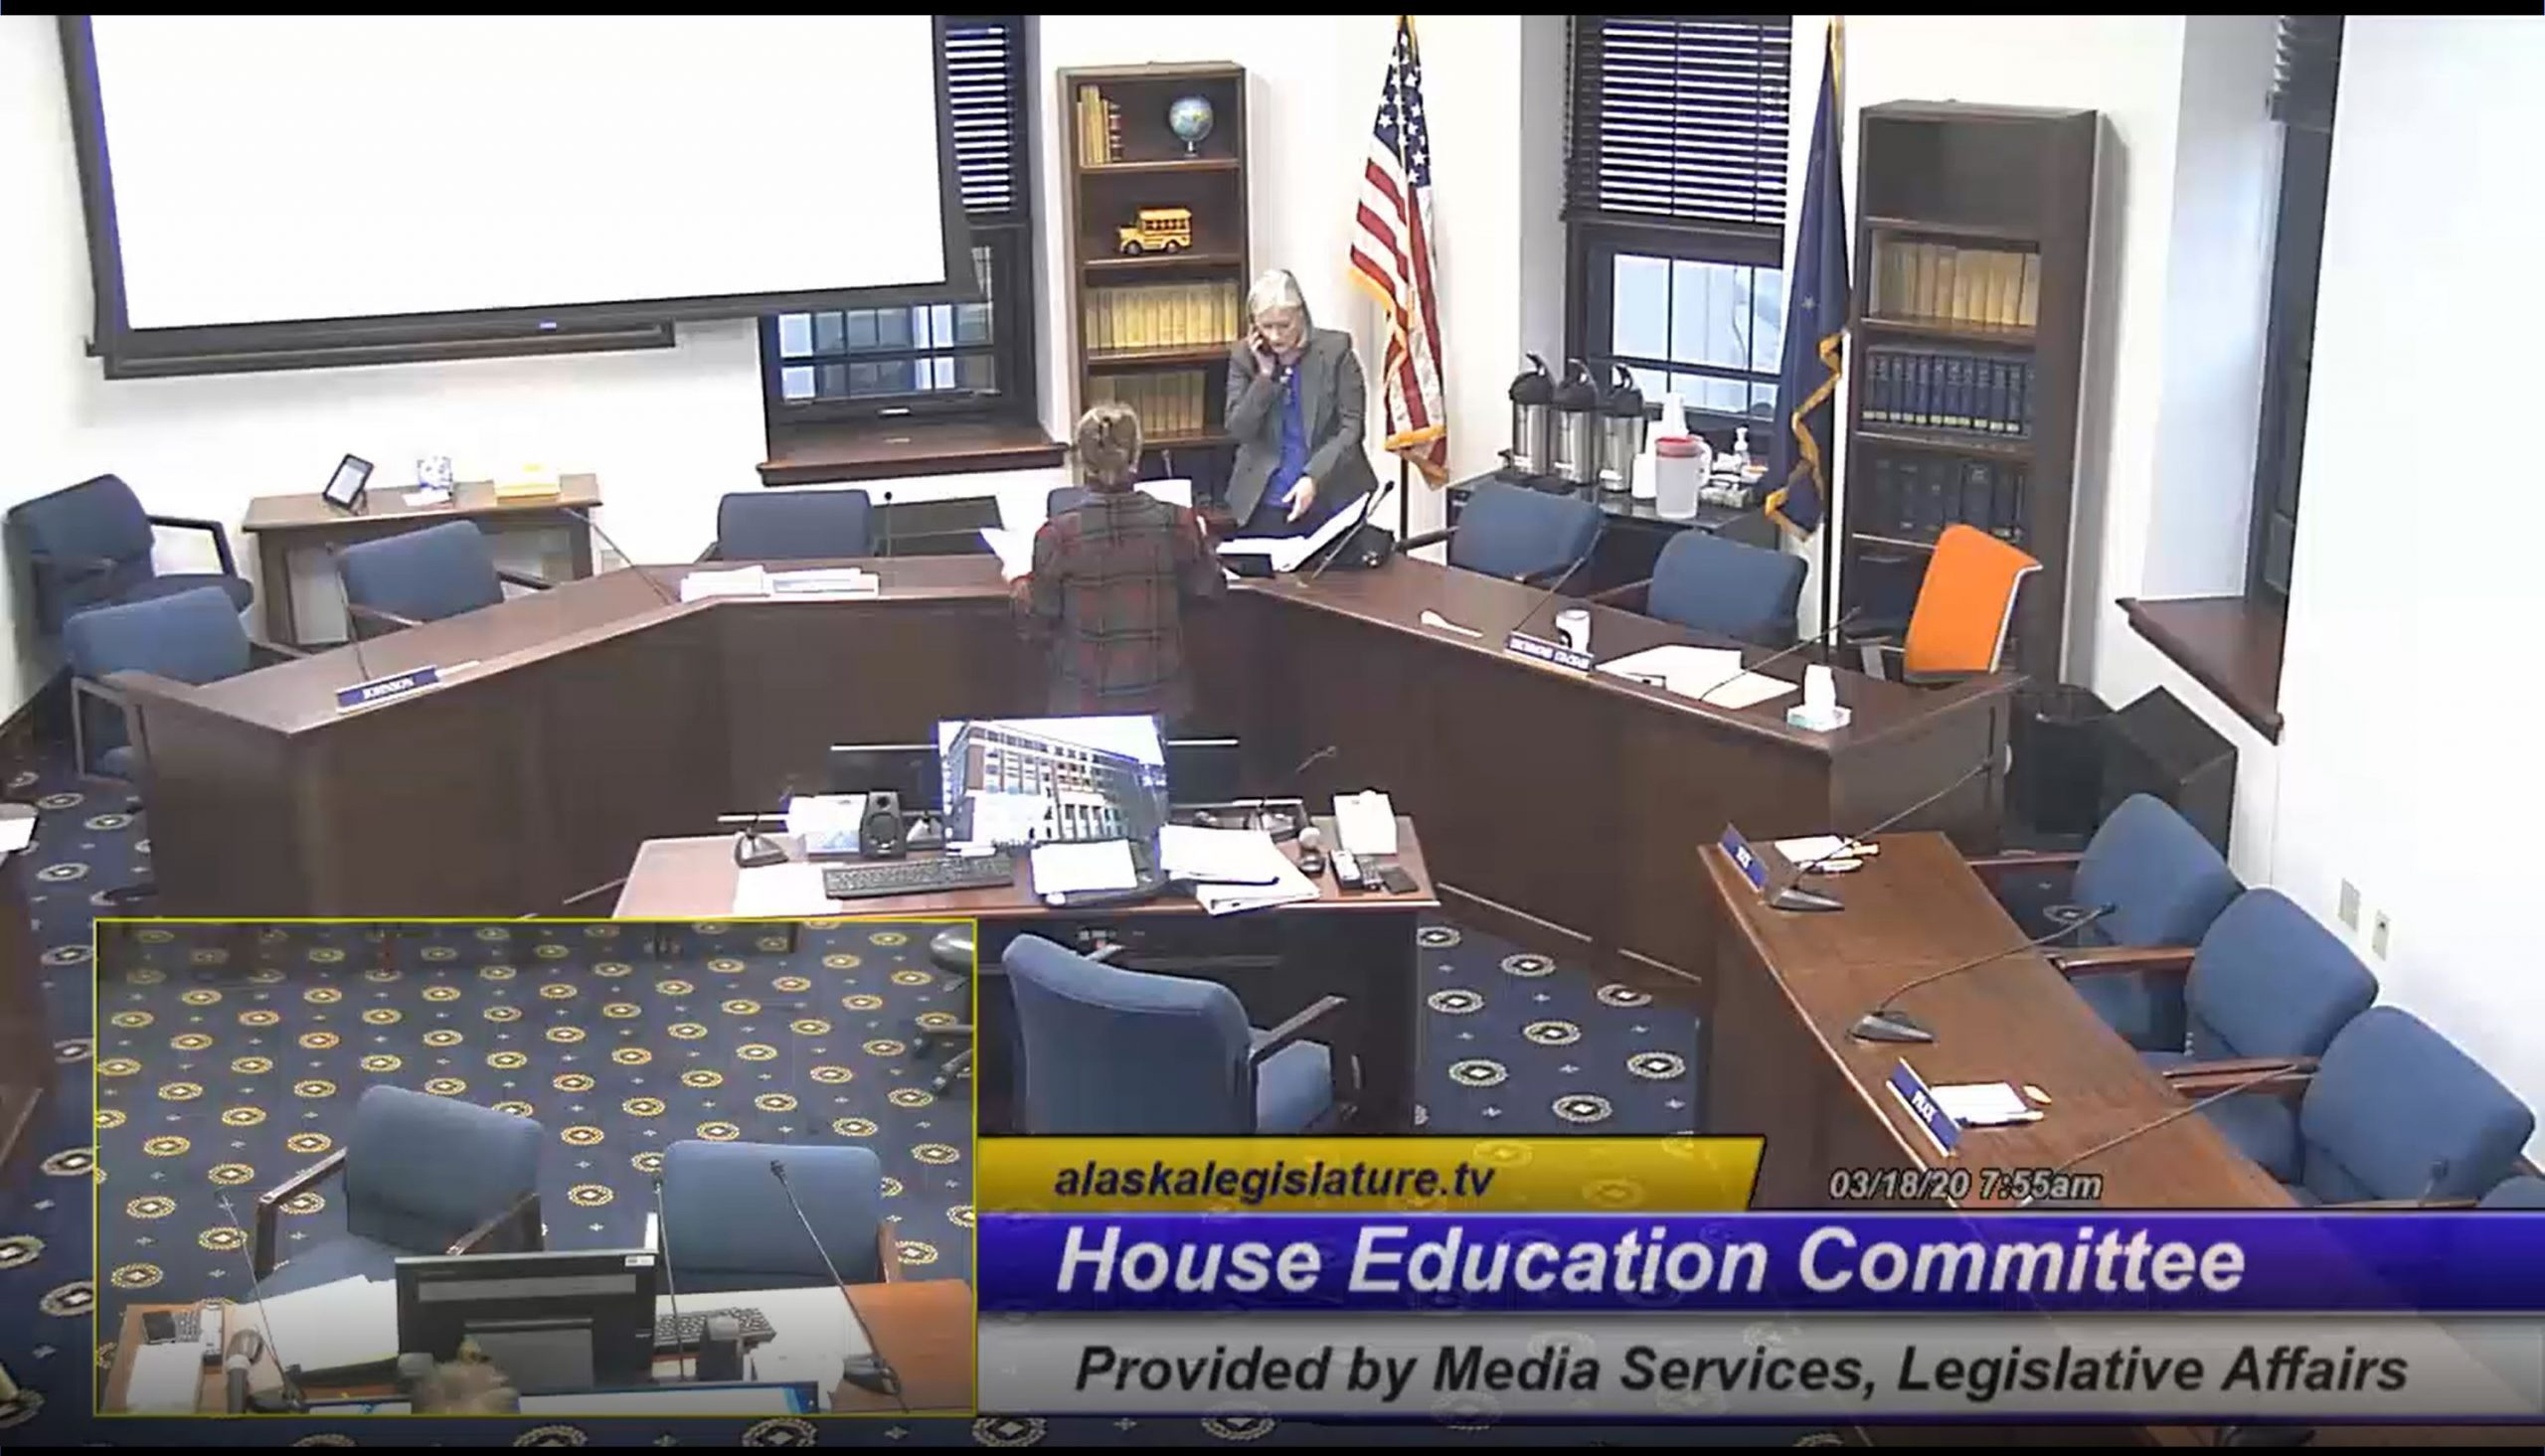 House Education Committee video freeze frame